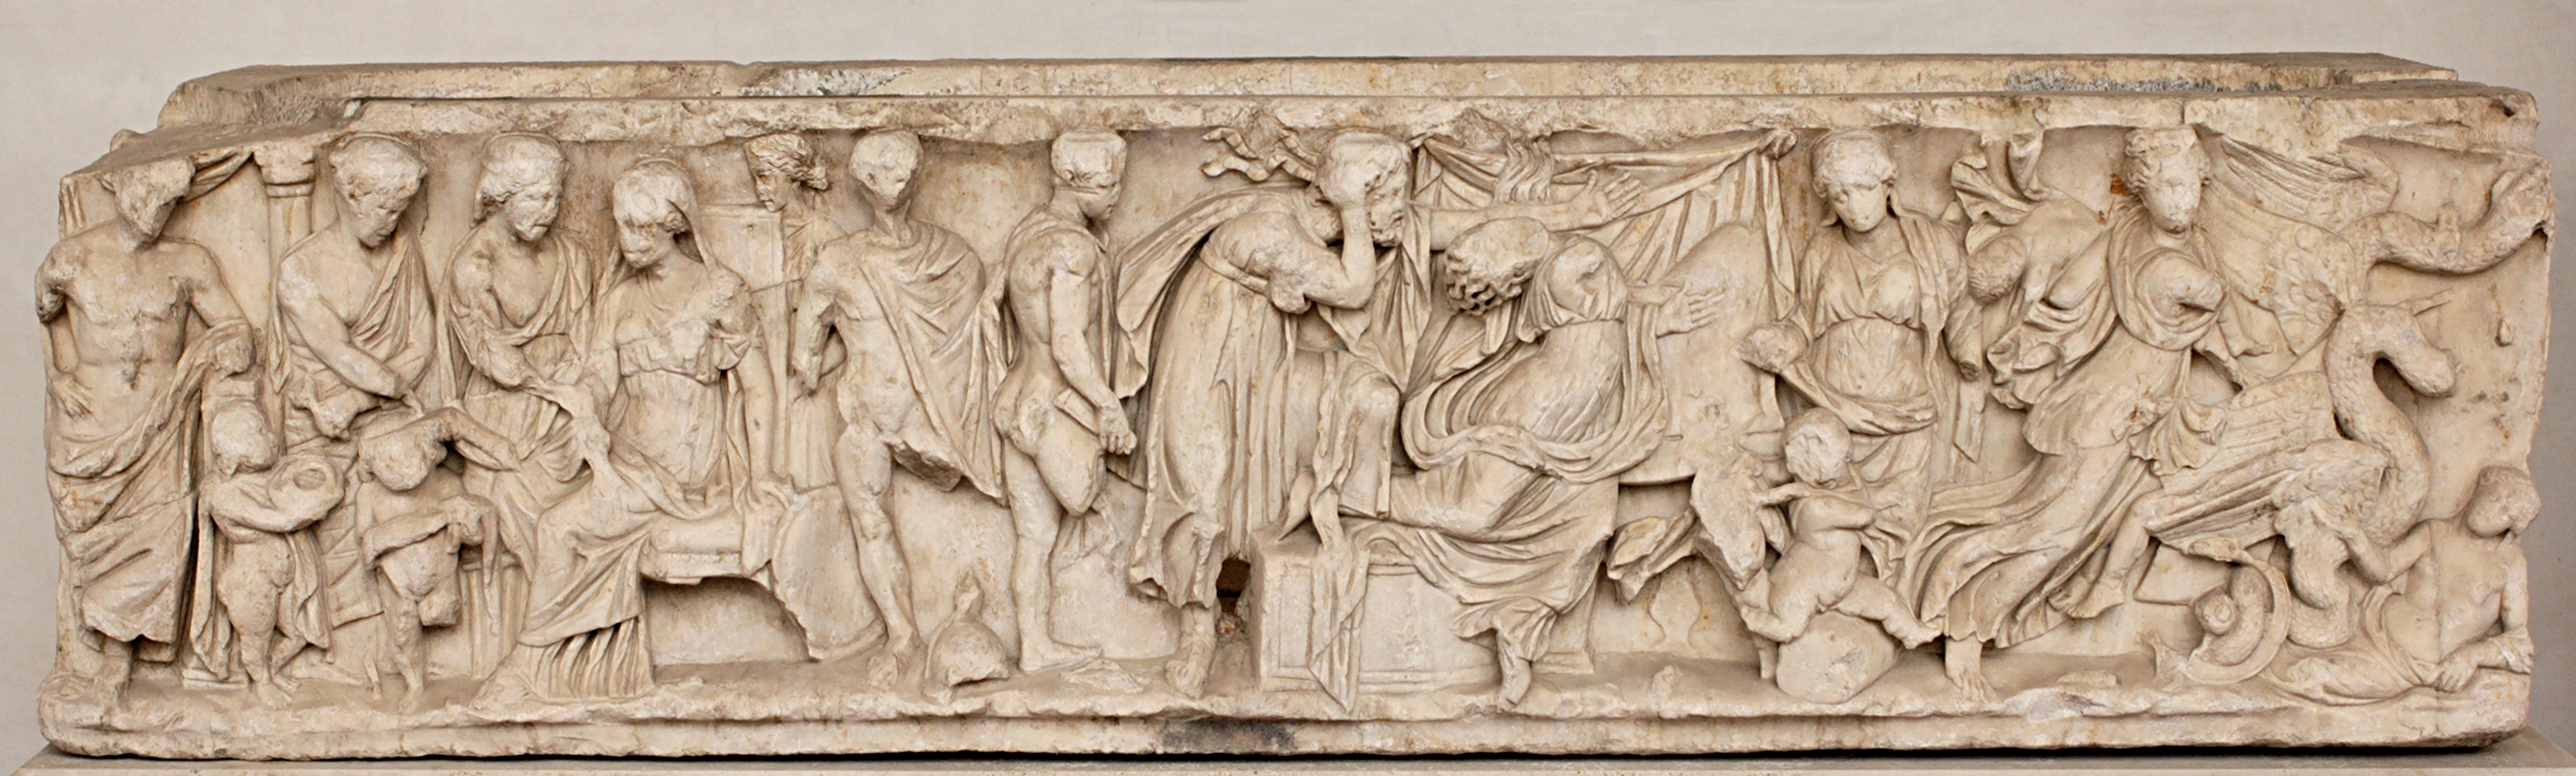 medea  sarcophagus scenes from the myth of medea the sending of gifts to creusa